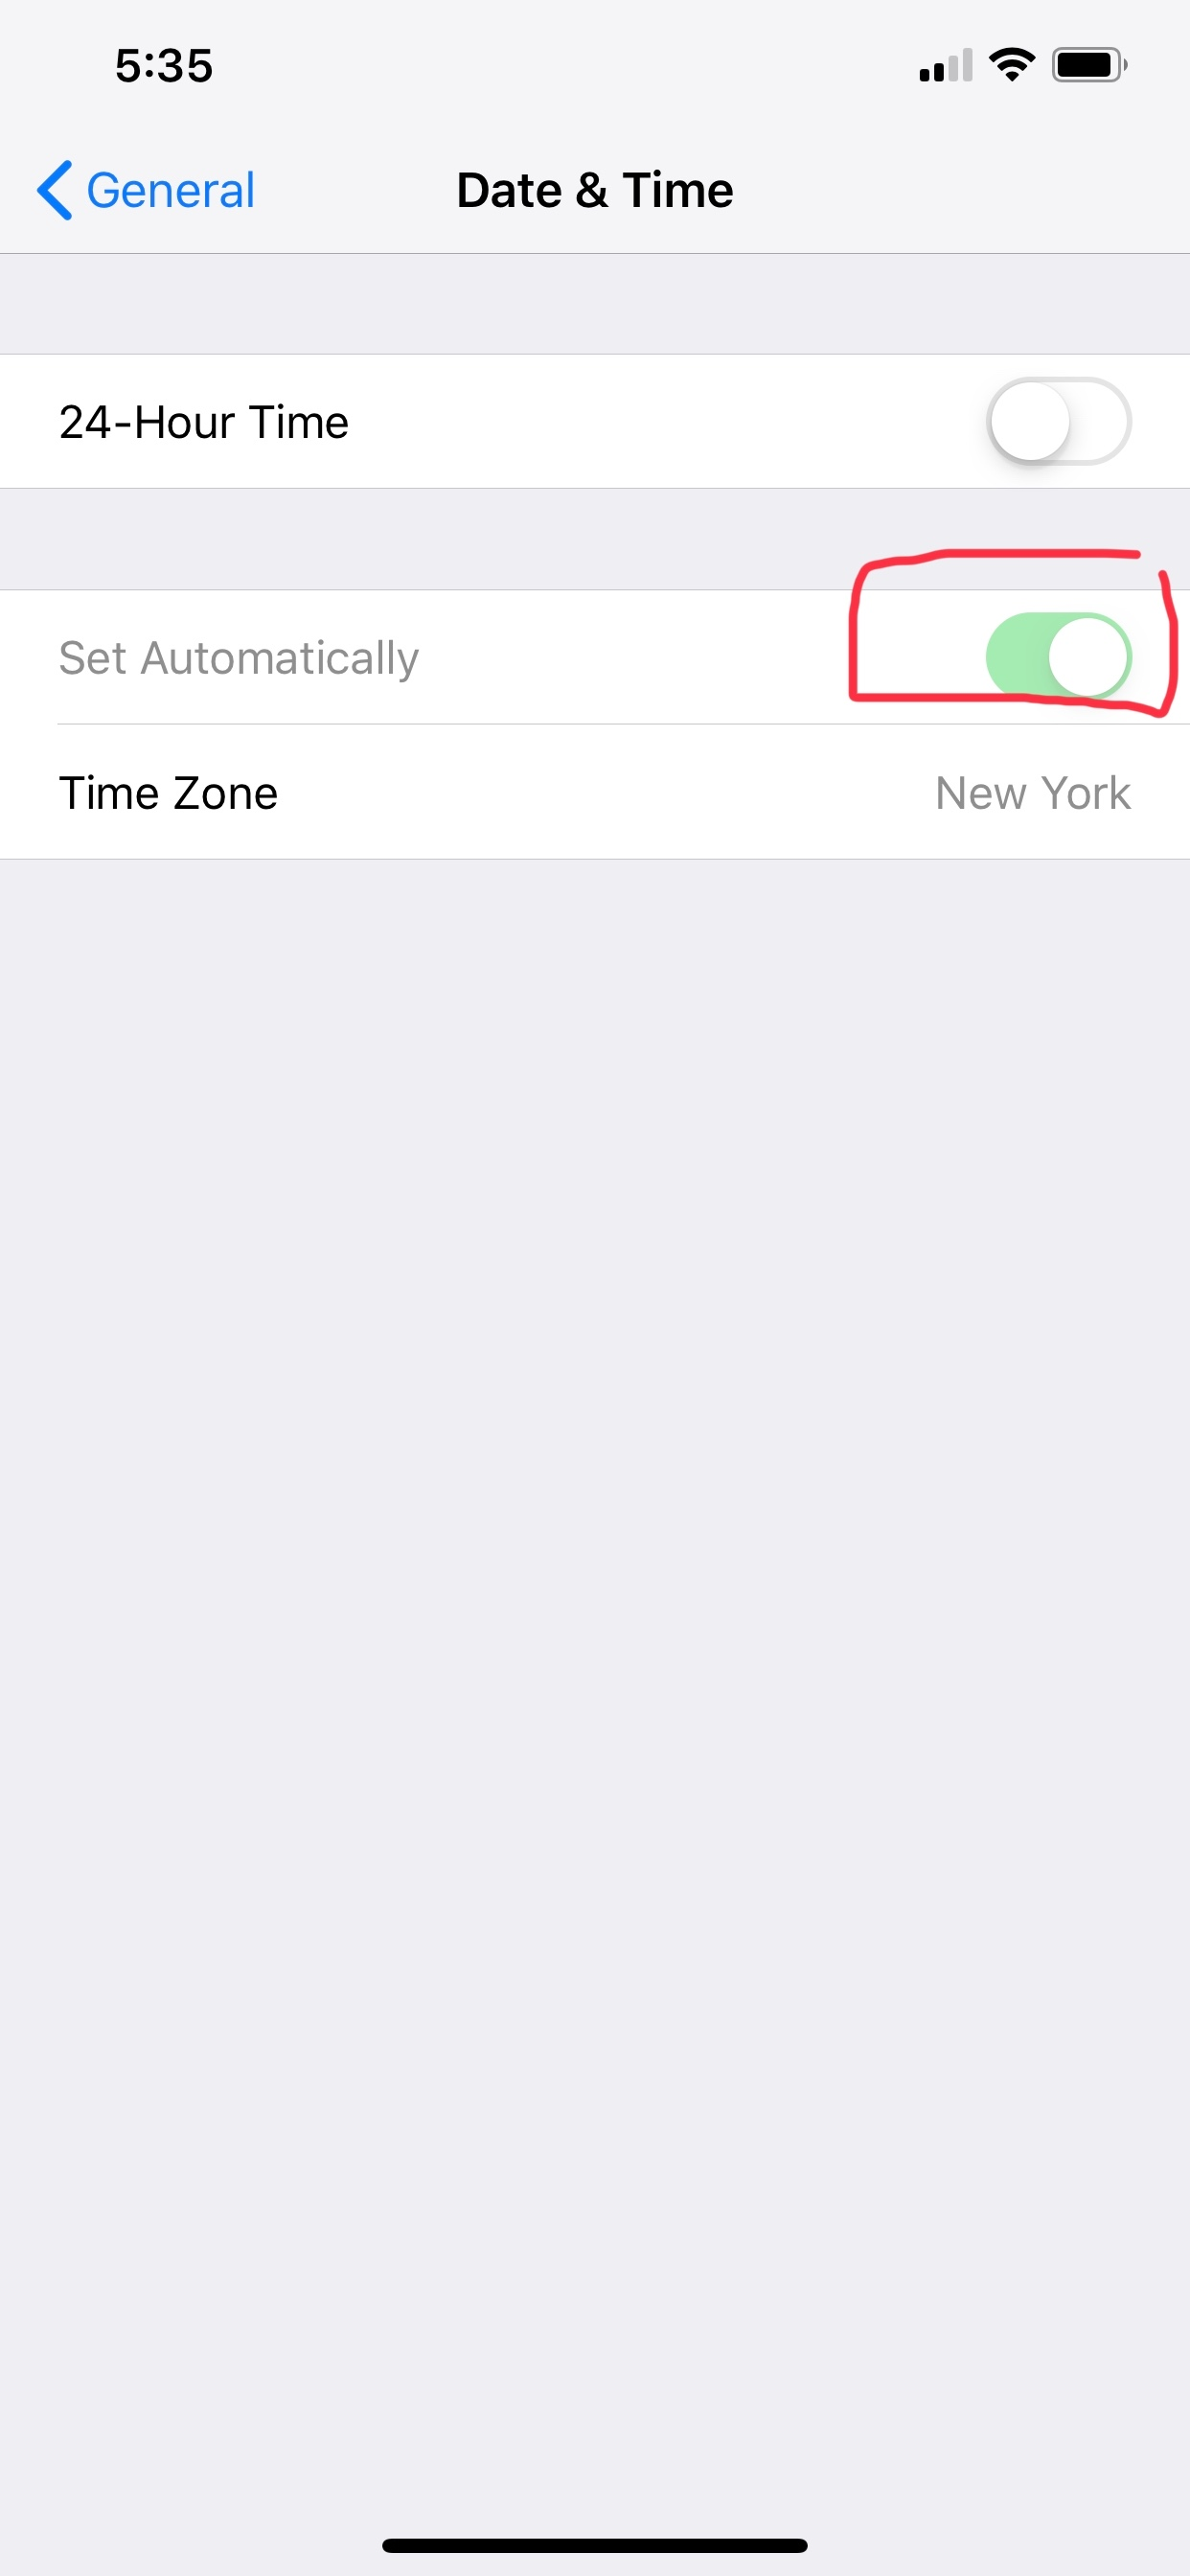 Date and time set automatically greyed out - Apple Community